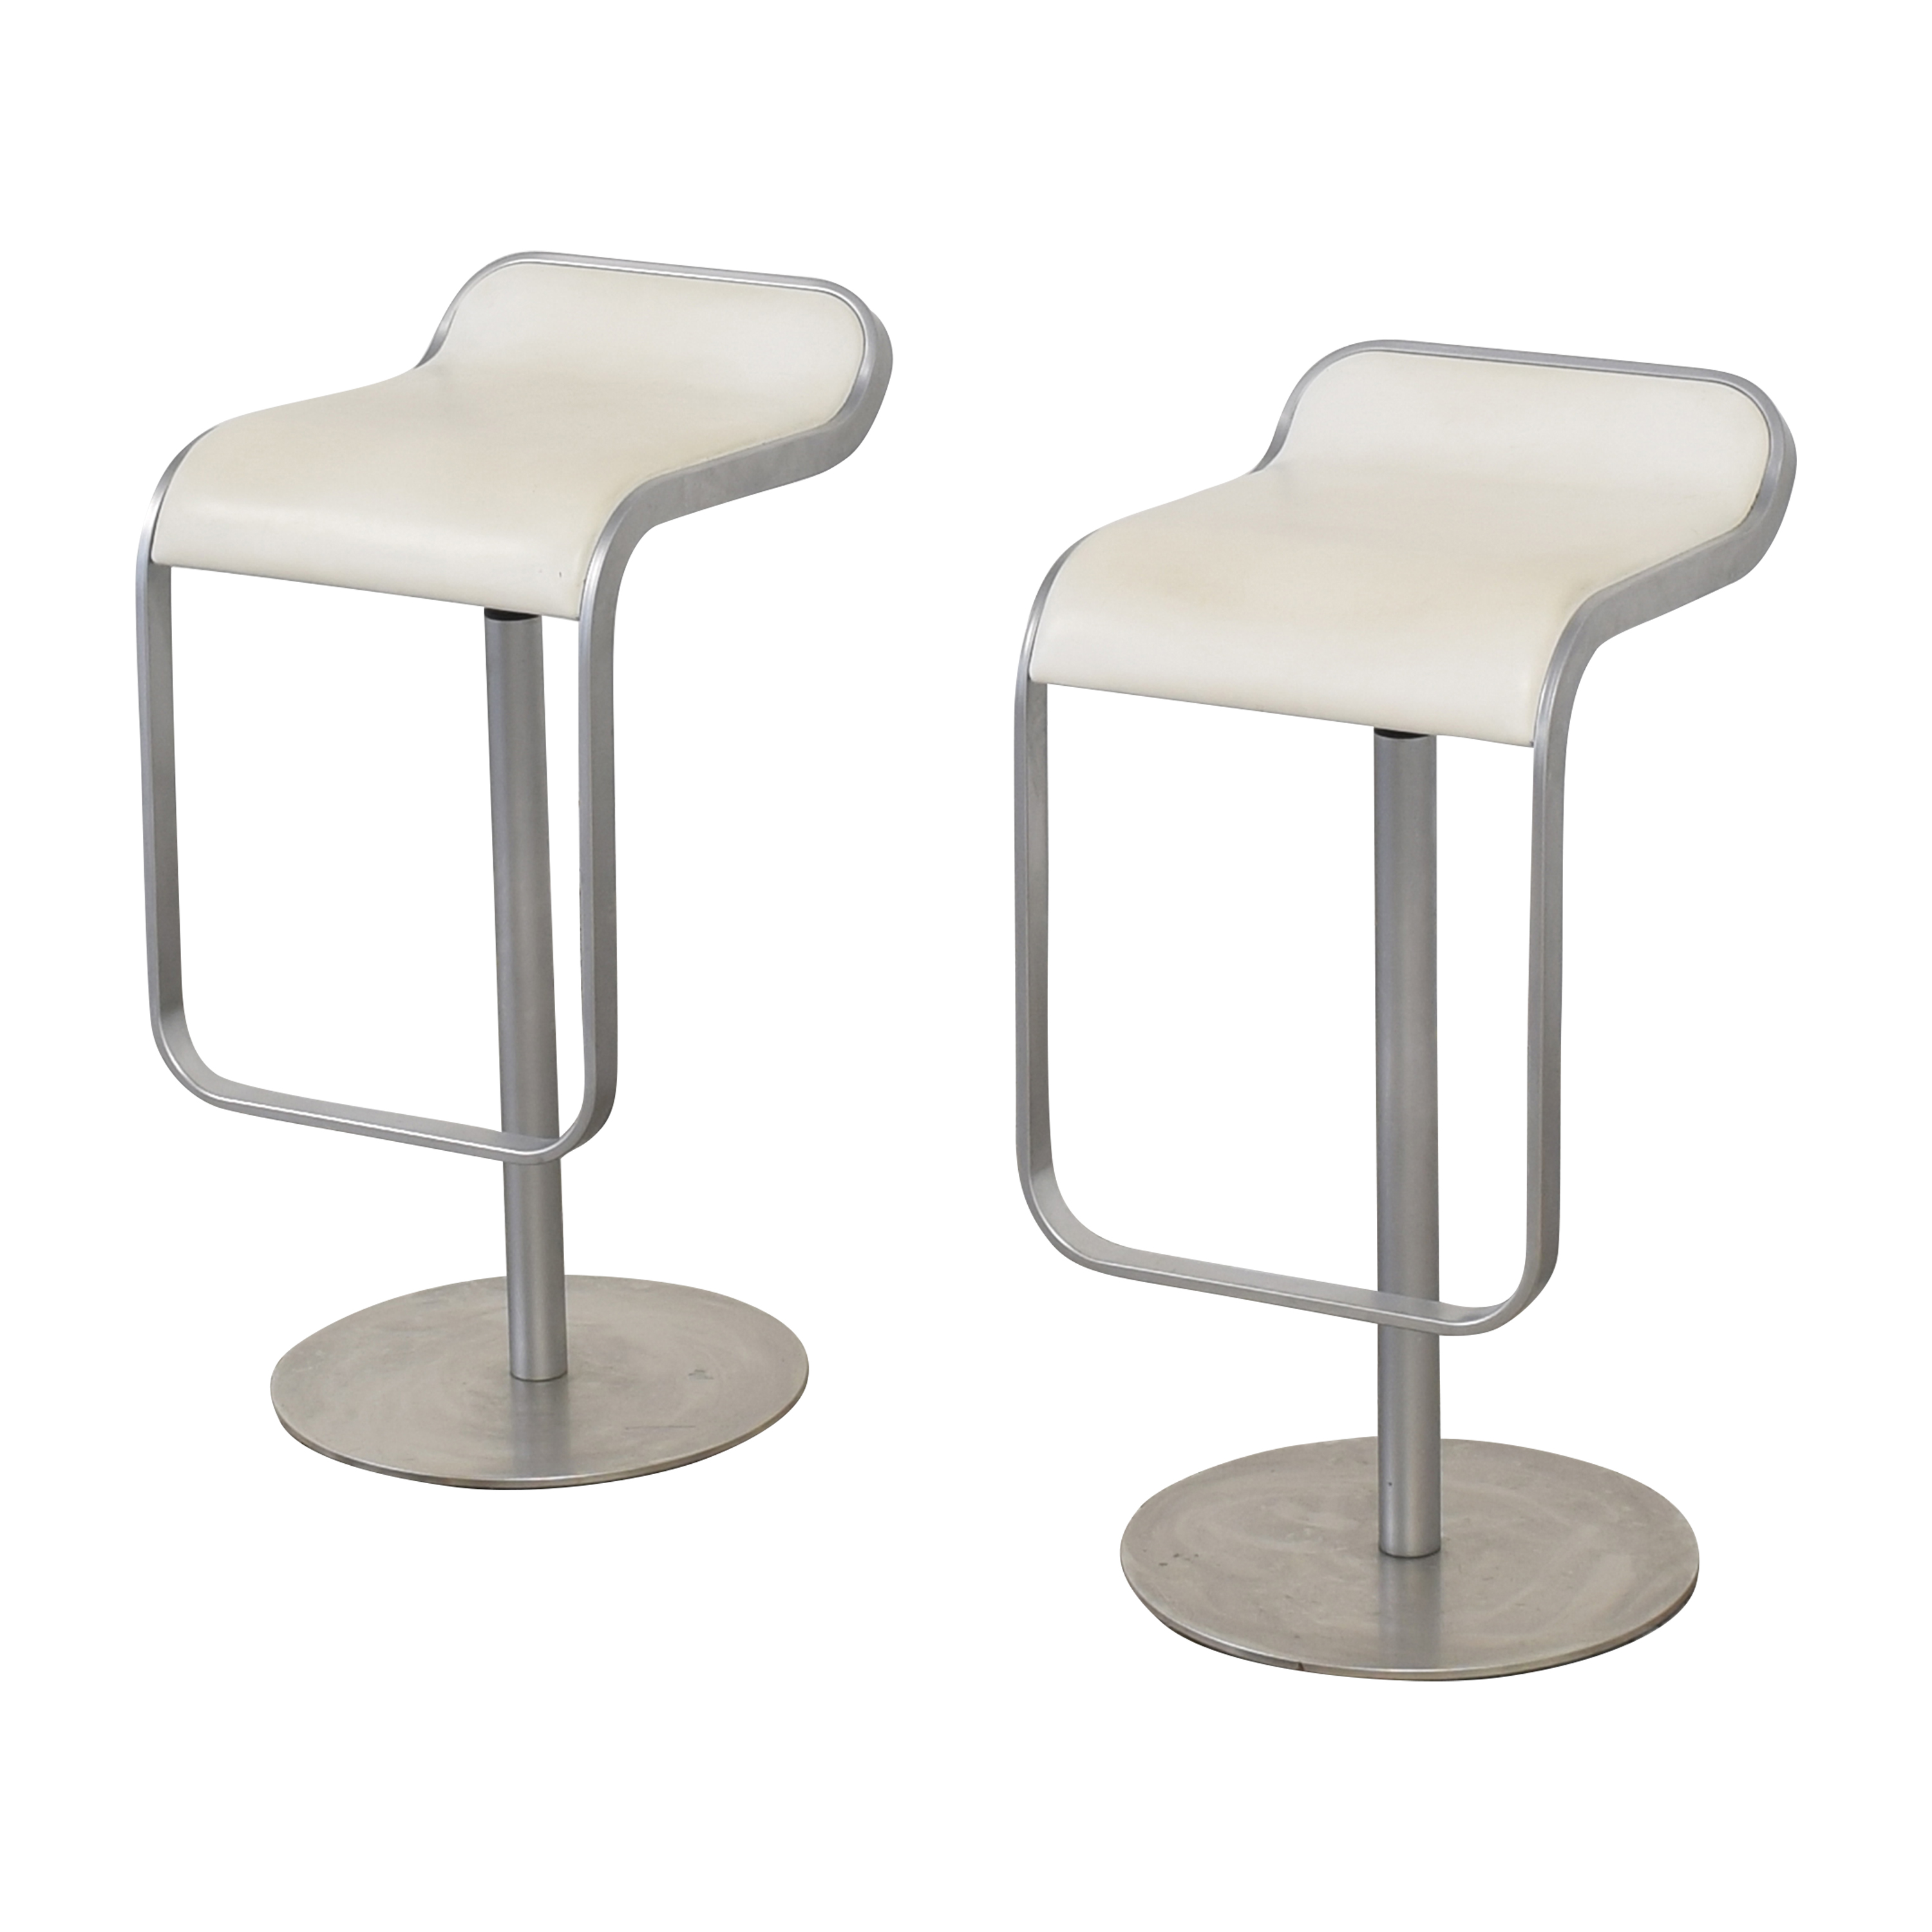 Design Within Reach Design Within Reach LEM Piston Stools dimensions